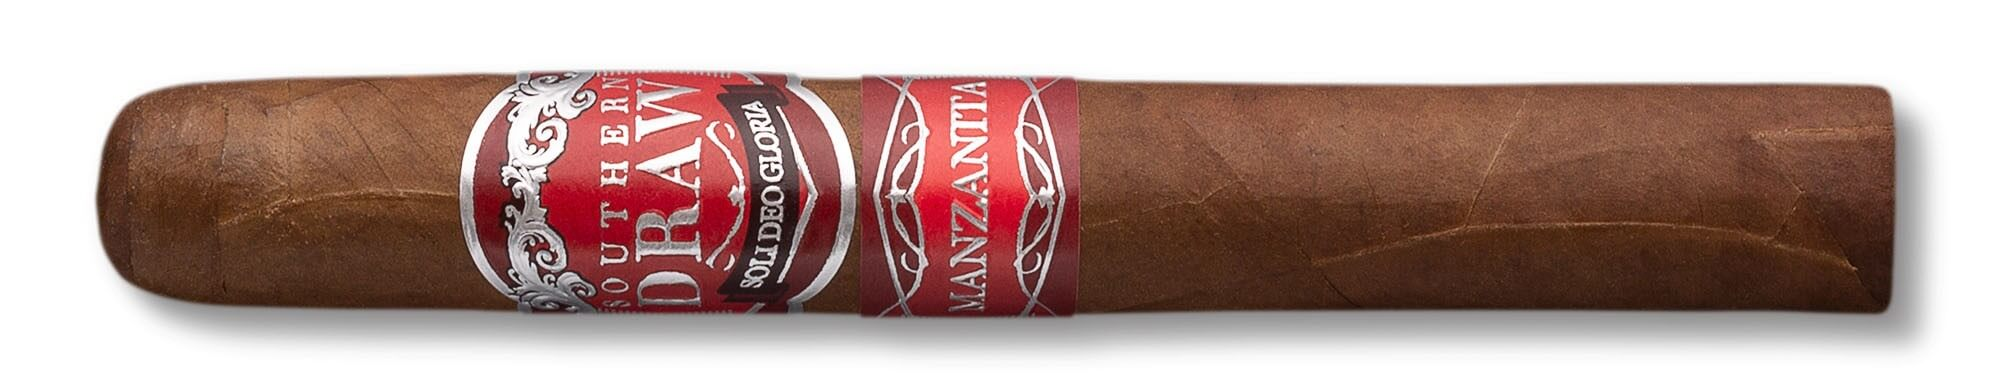 Cigar News: Southern Draw Announces Manzanita